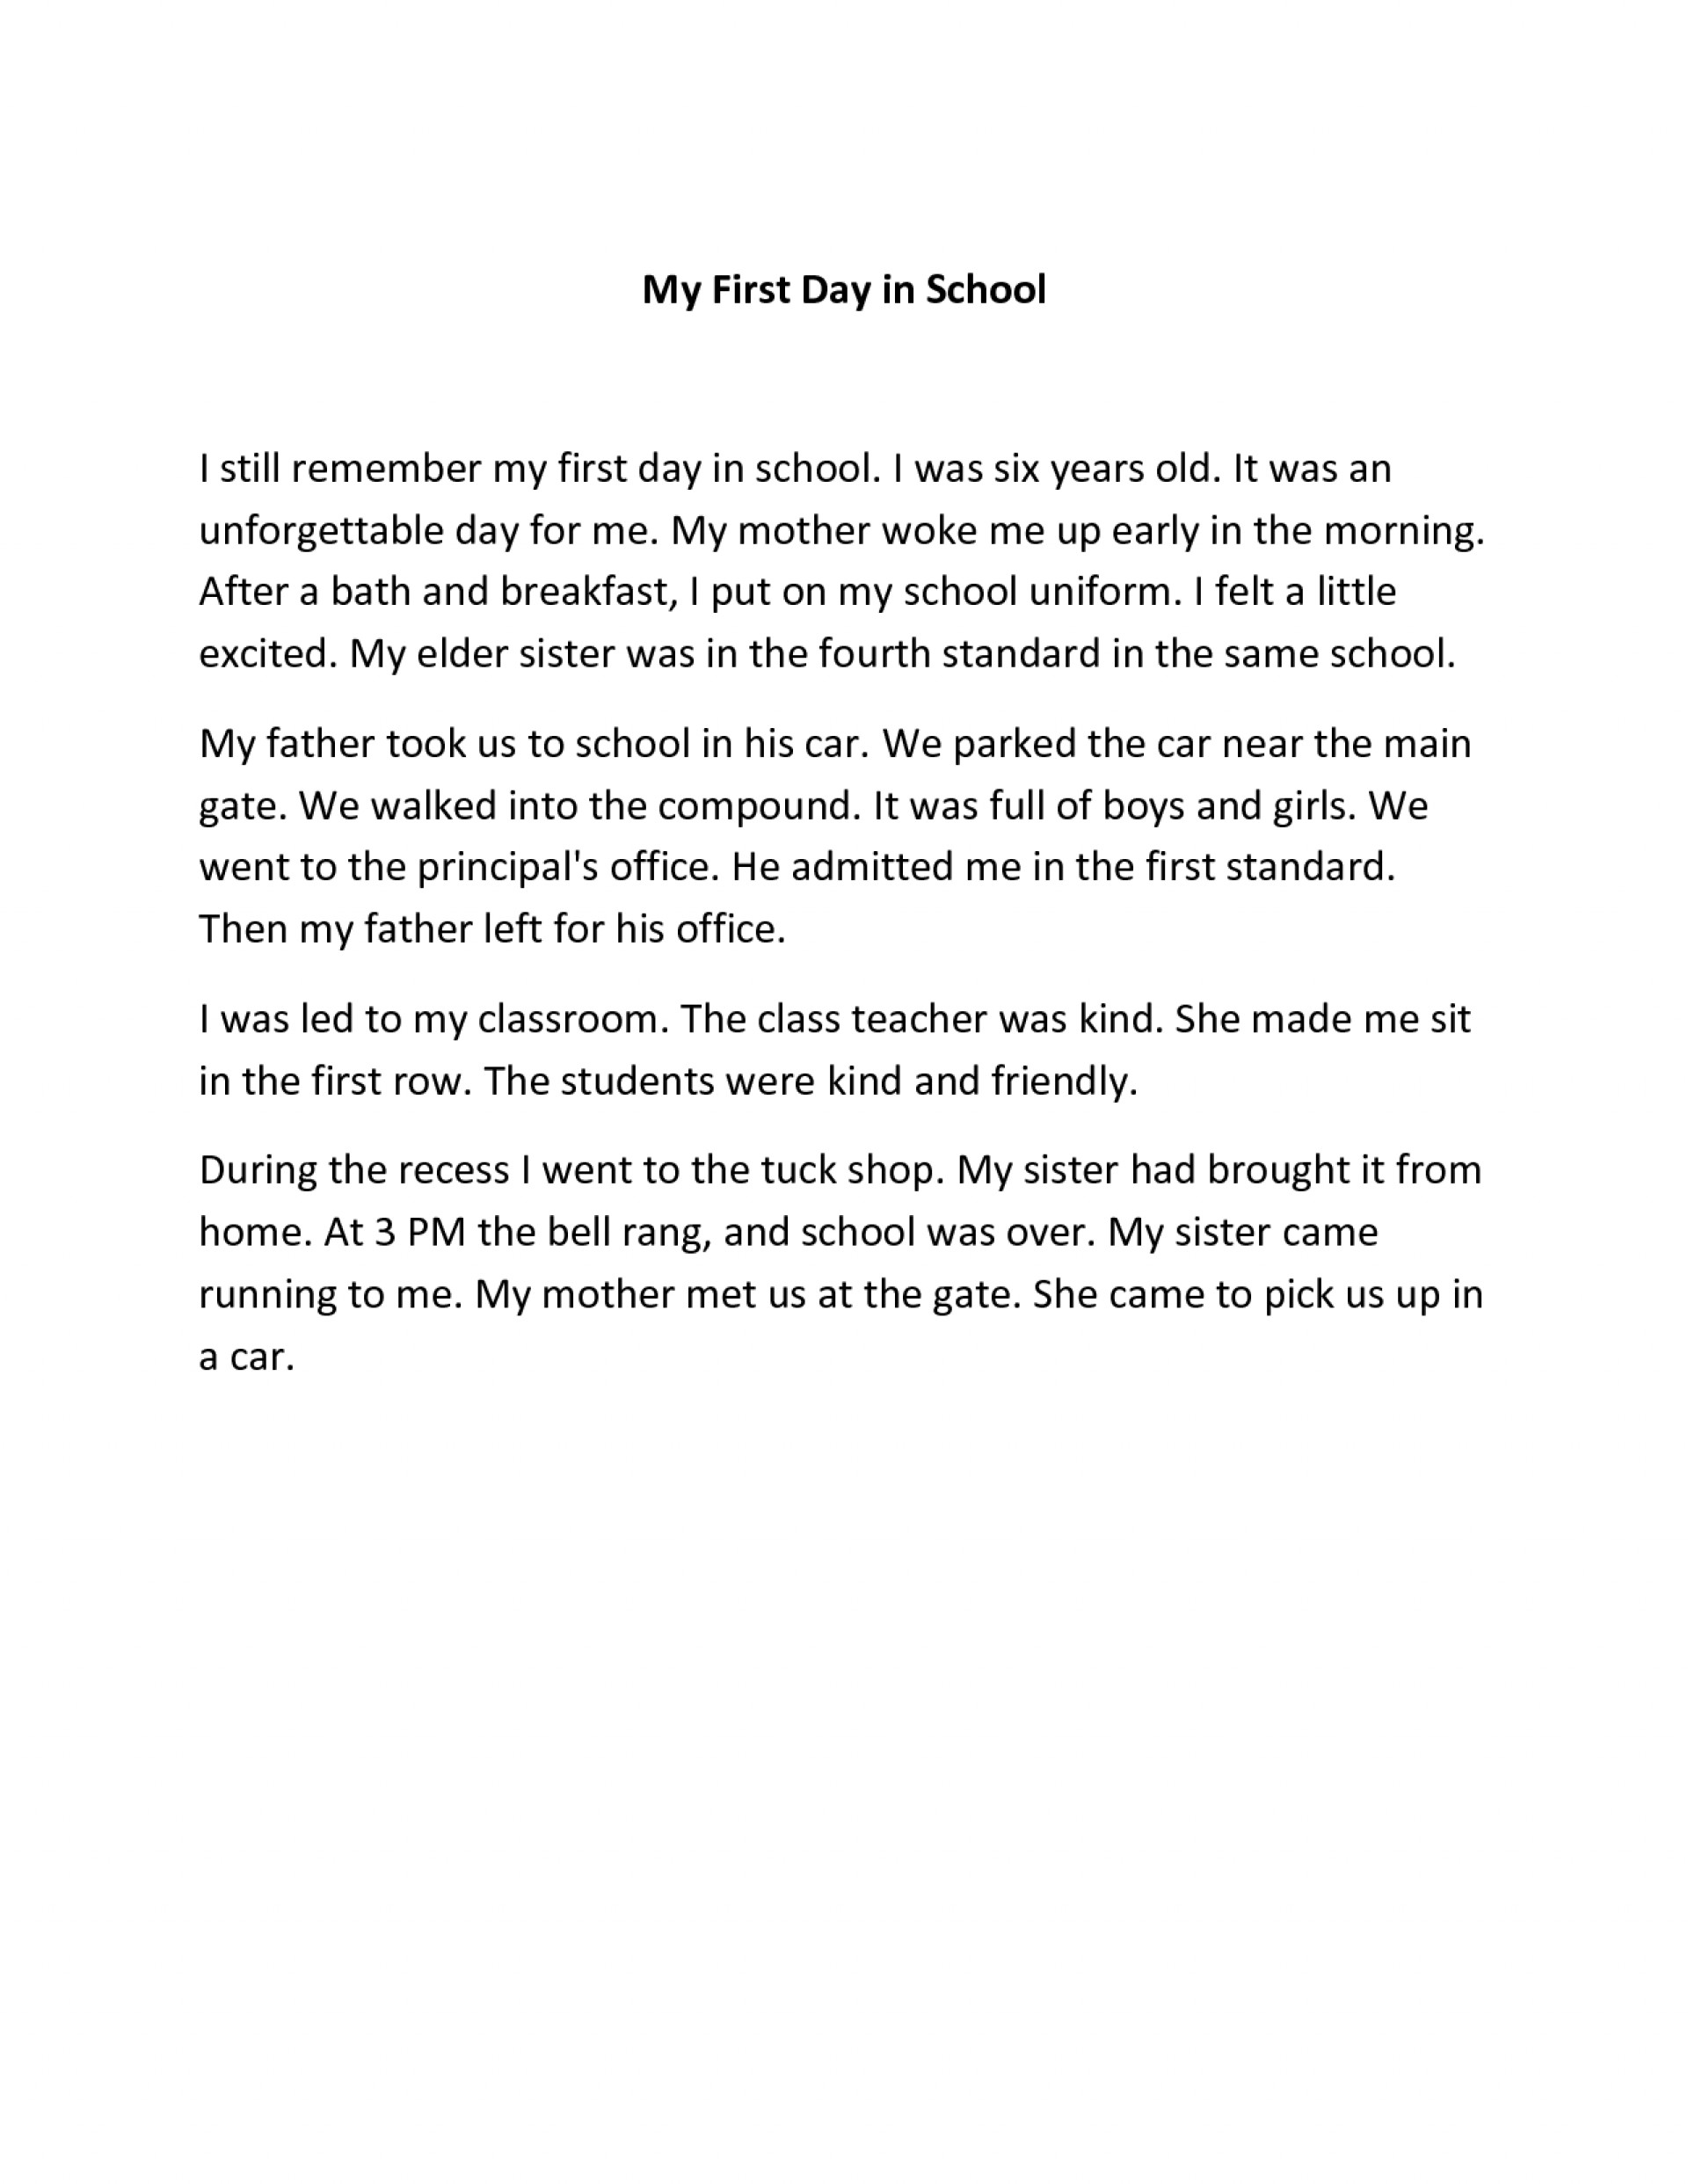 First day in school essay